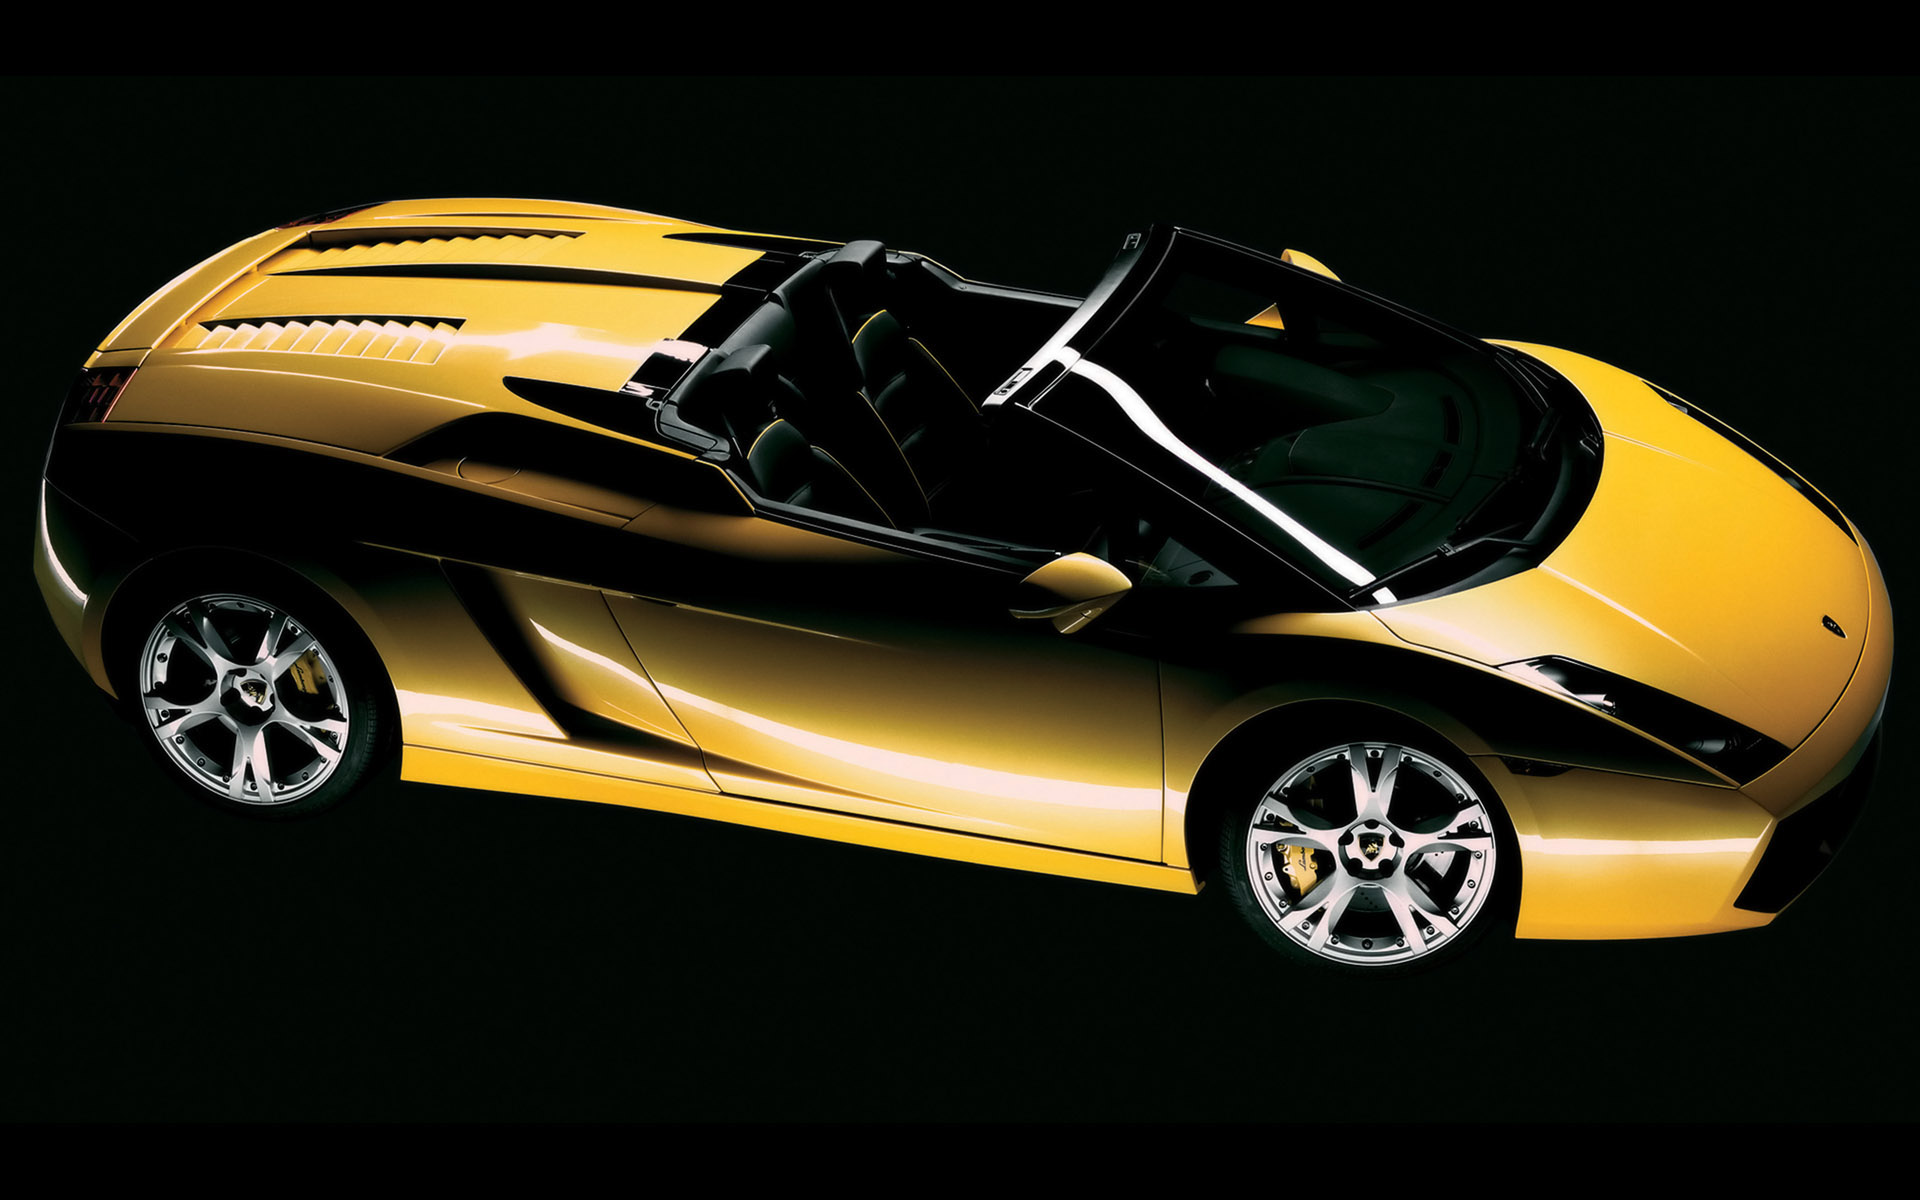 Cars Awesome Wallpapers